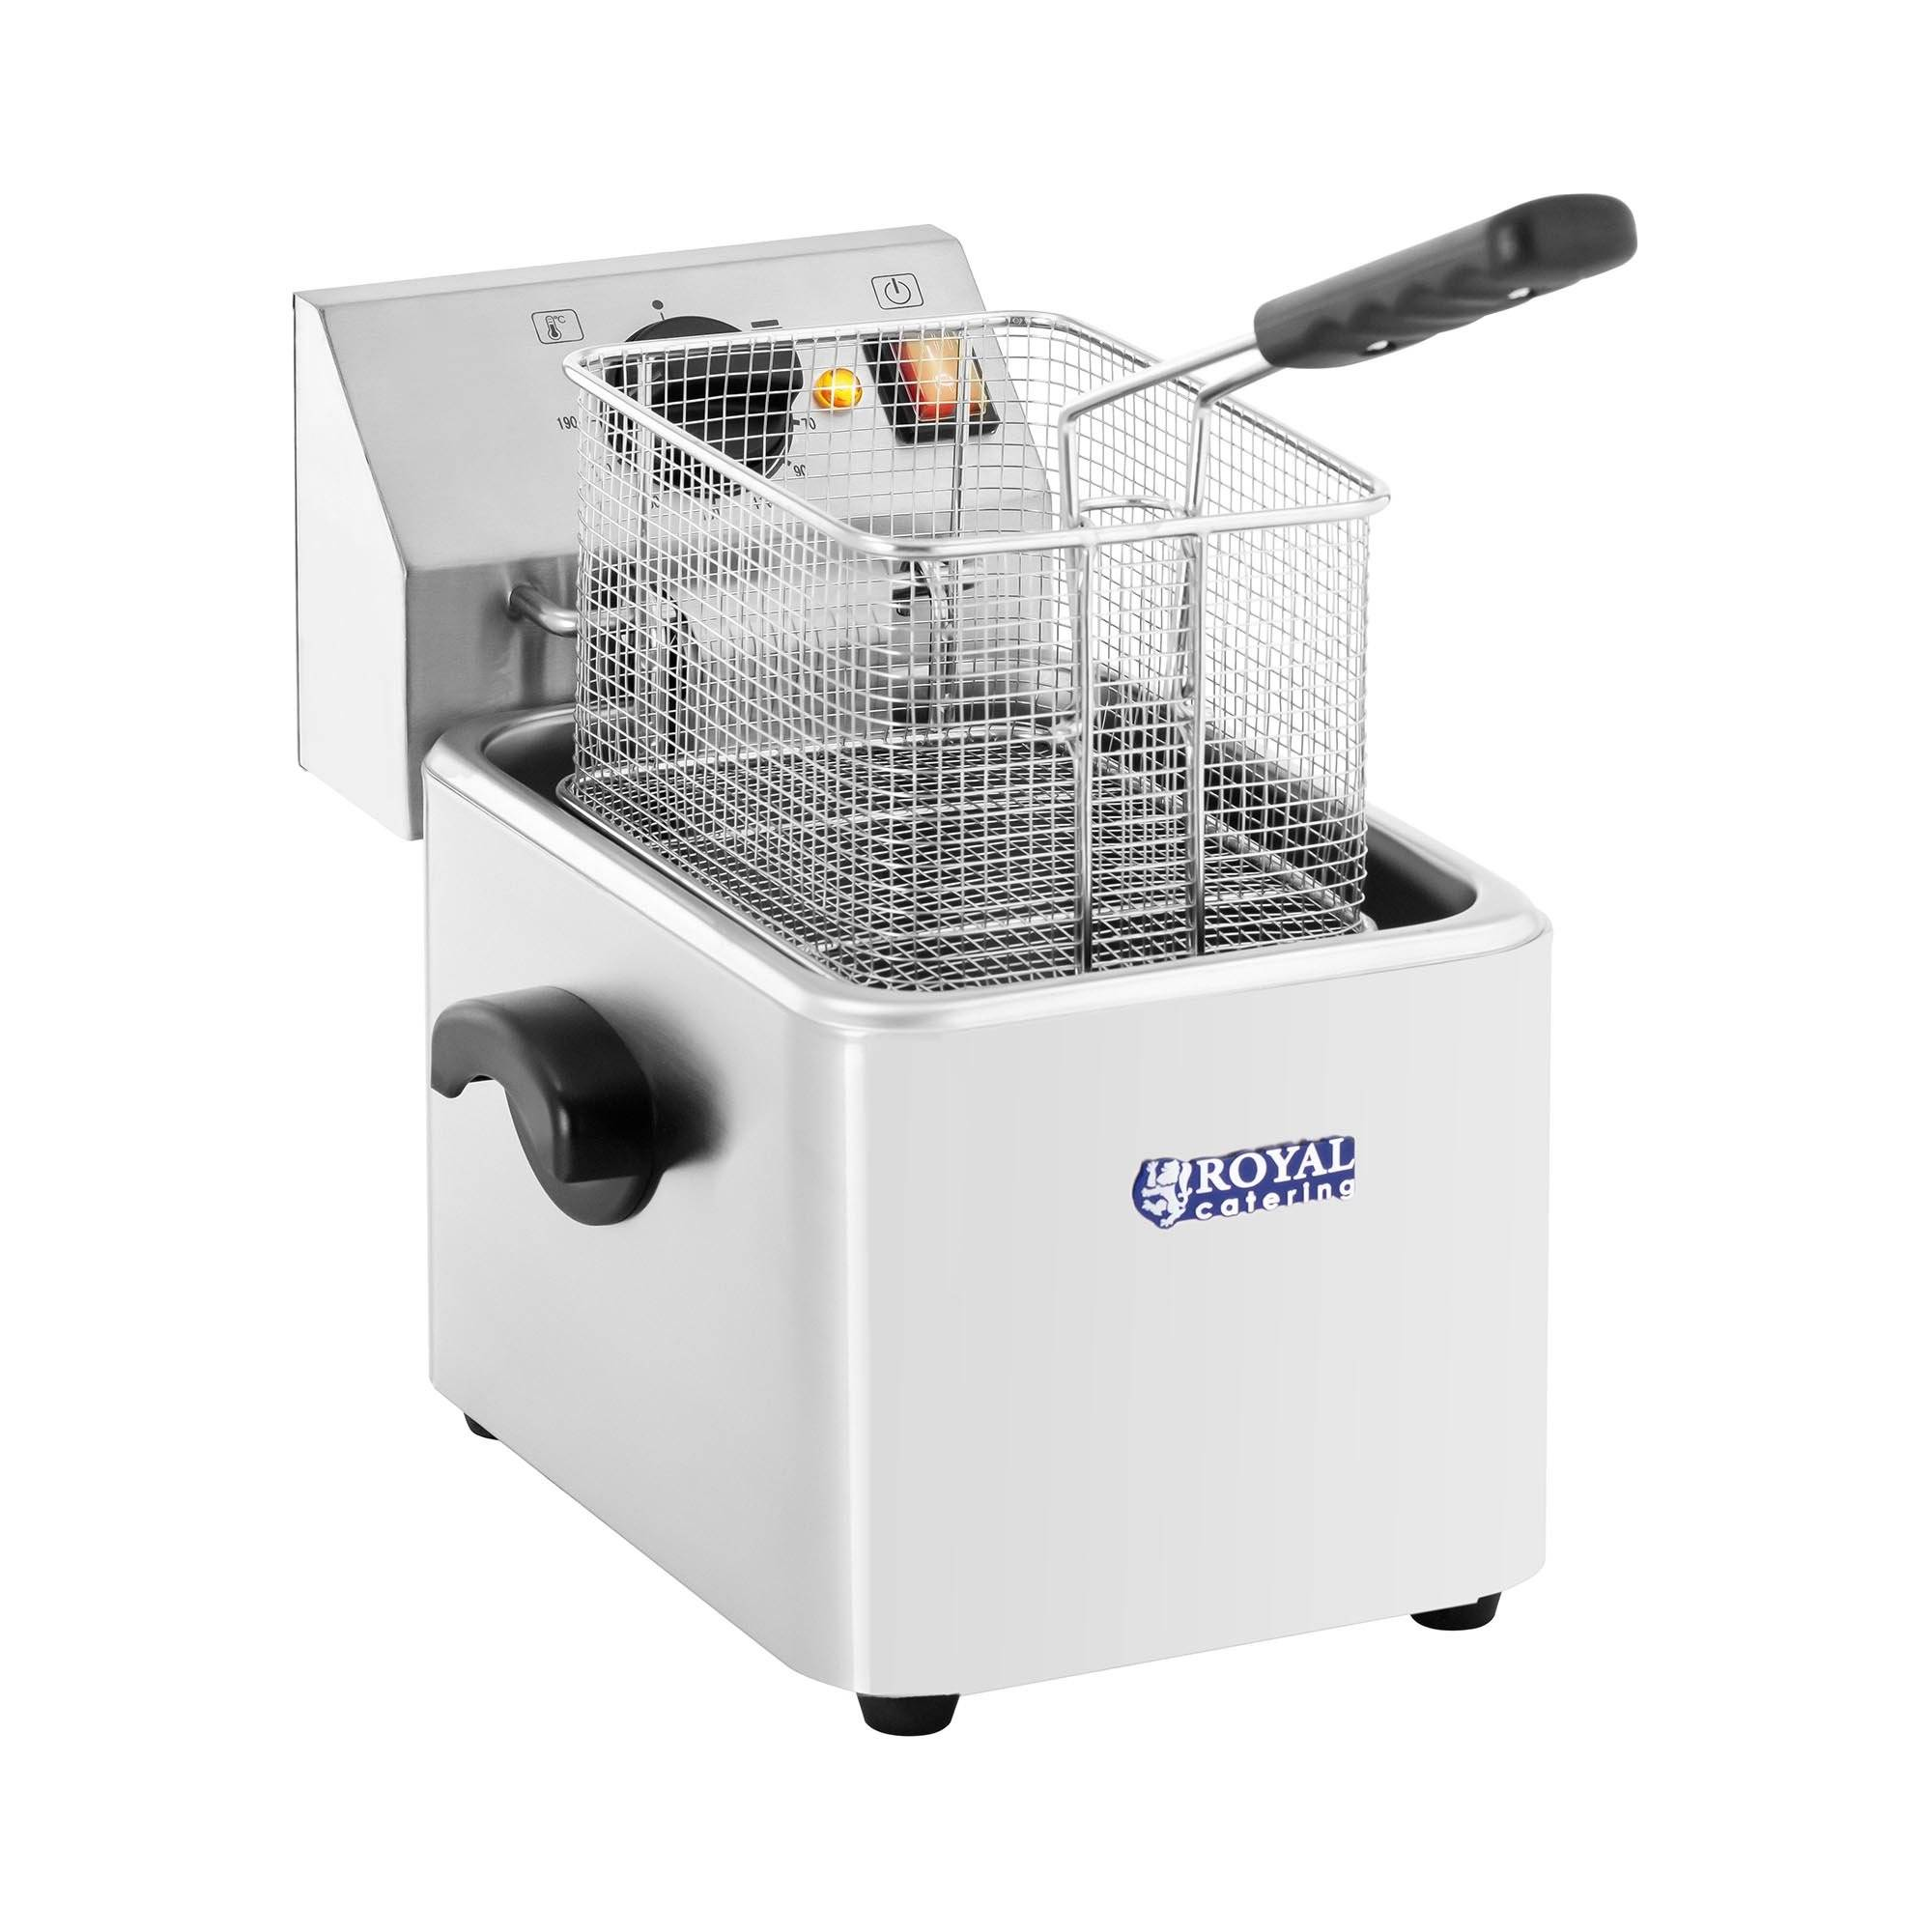 Royal Catering Commercial Electrical fryer - 8 L - EGO Thermostat